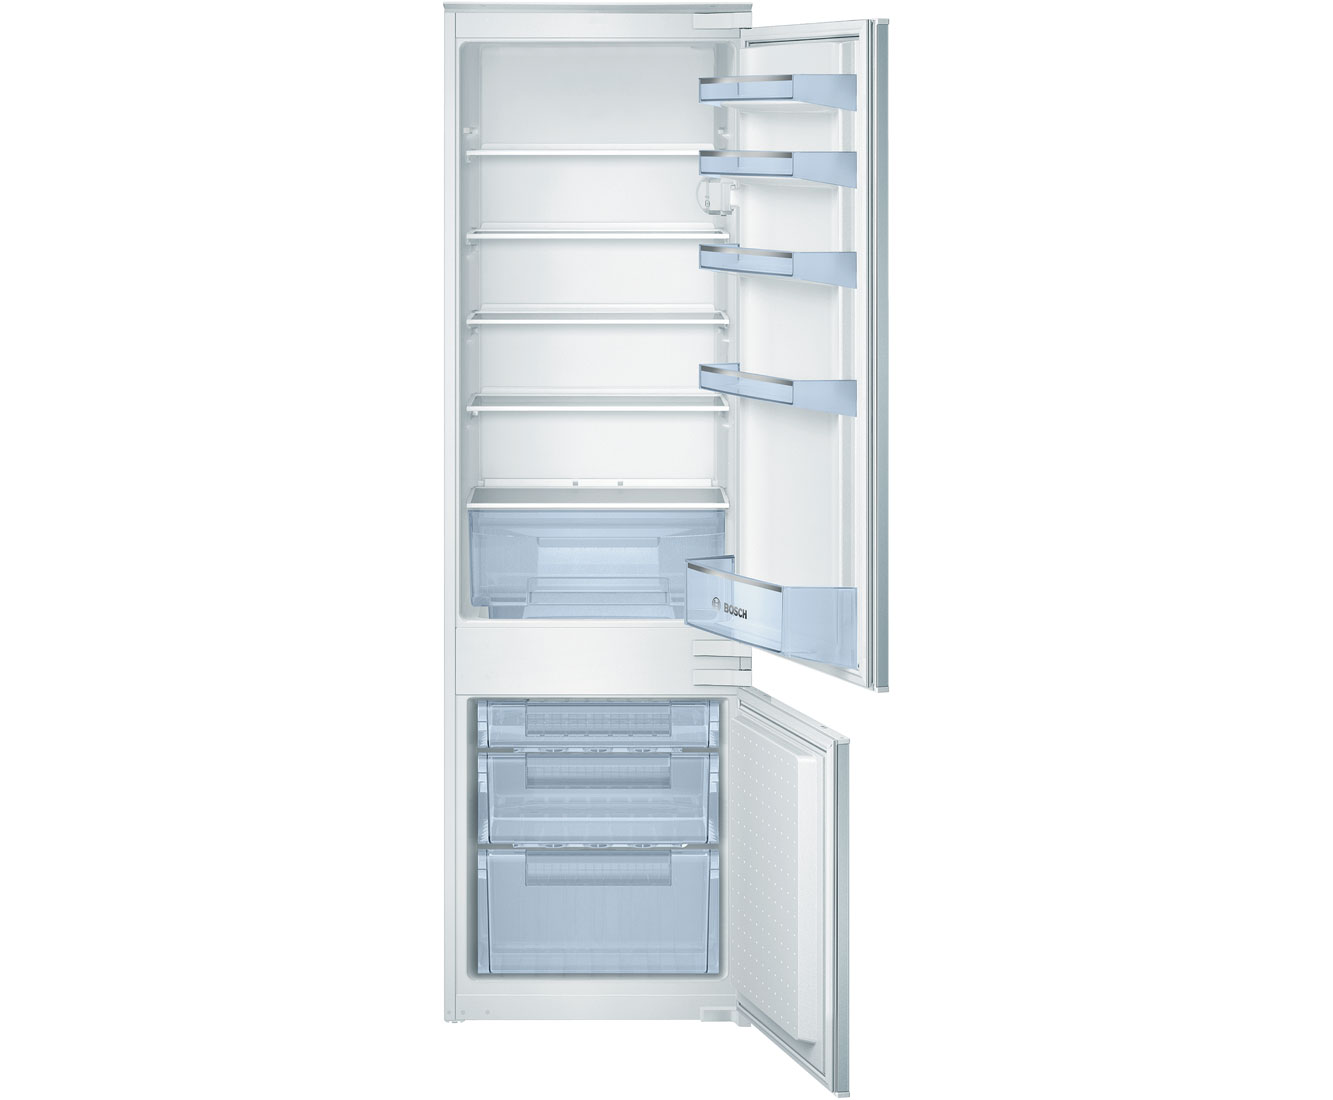 Online Fridge Cheap Bosch Fridge Freezer Best Uk Deals On Fridge